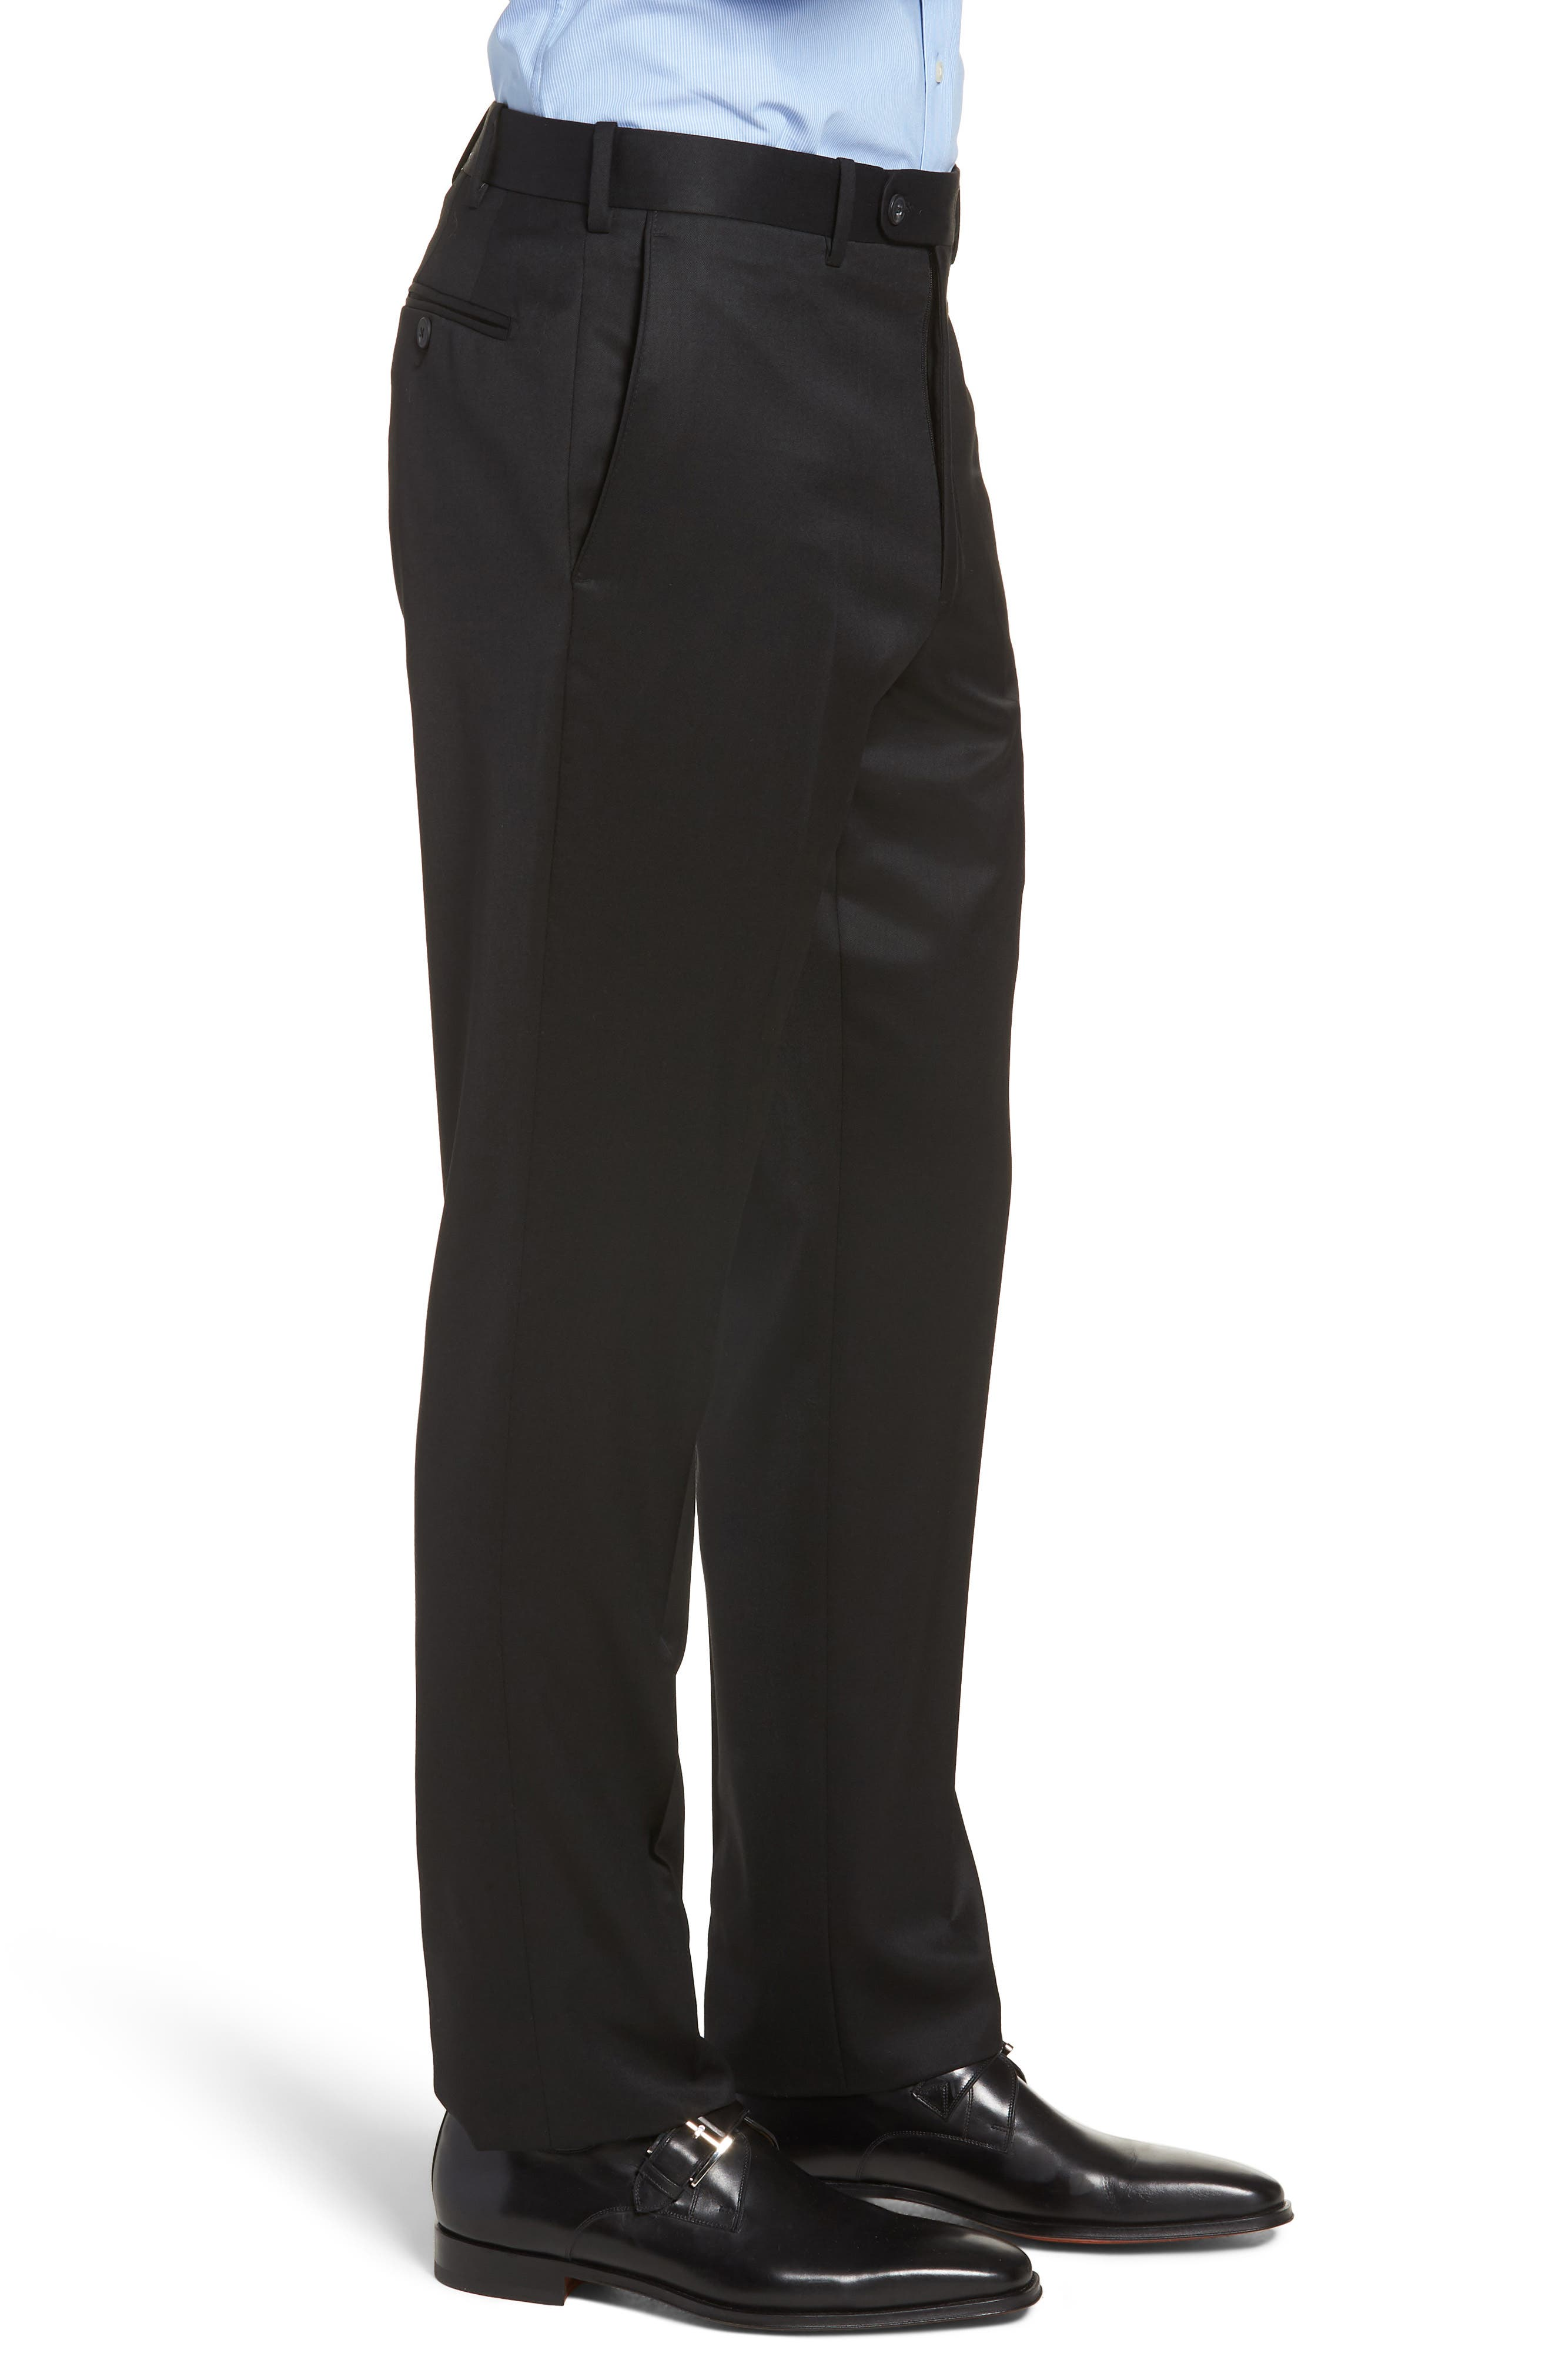 JOHN W. NORDSTROM<SUP>®</SUP>, Torino Traditional Fit Flat Front Solid Trousers, Alternate thumbnail 3, color, BLACK